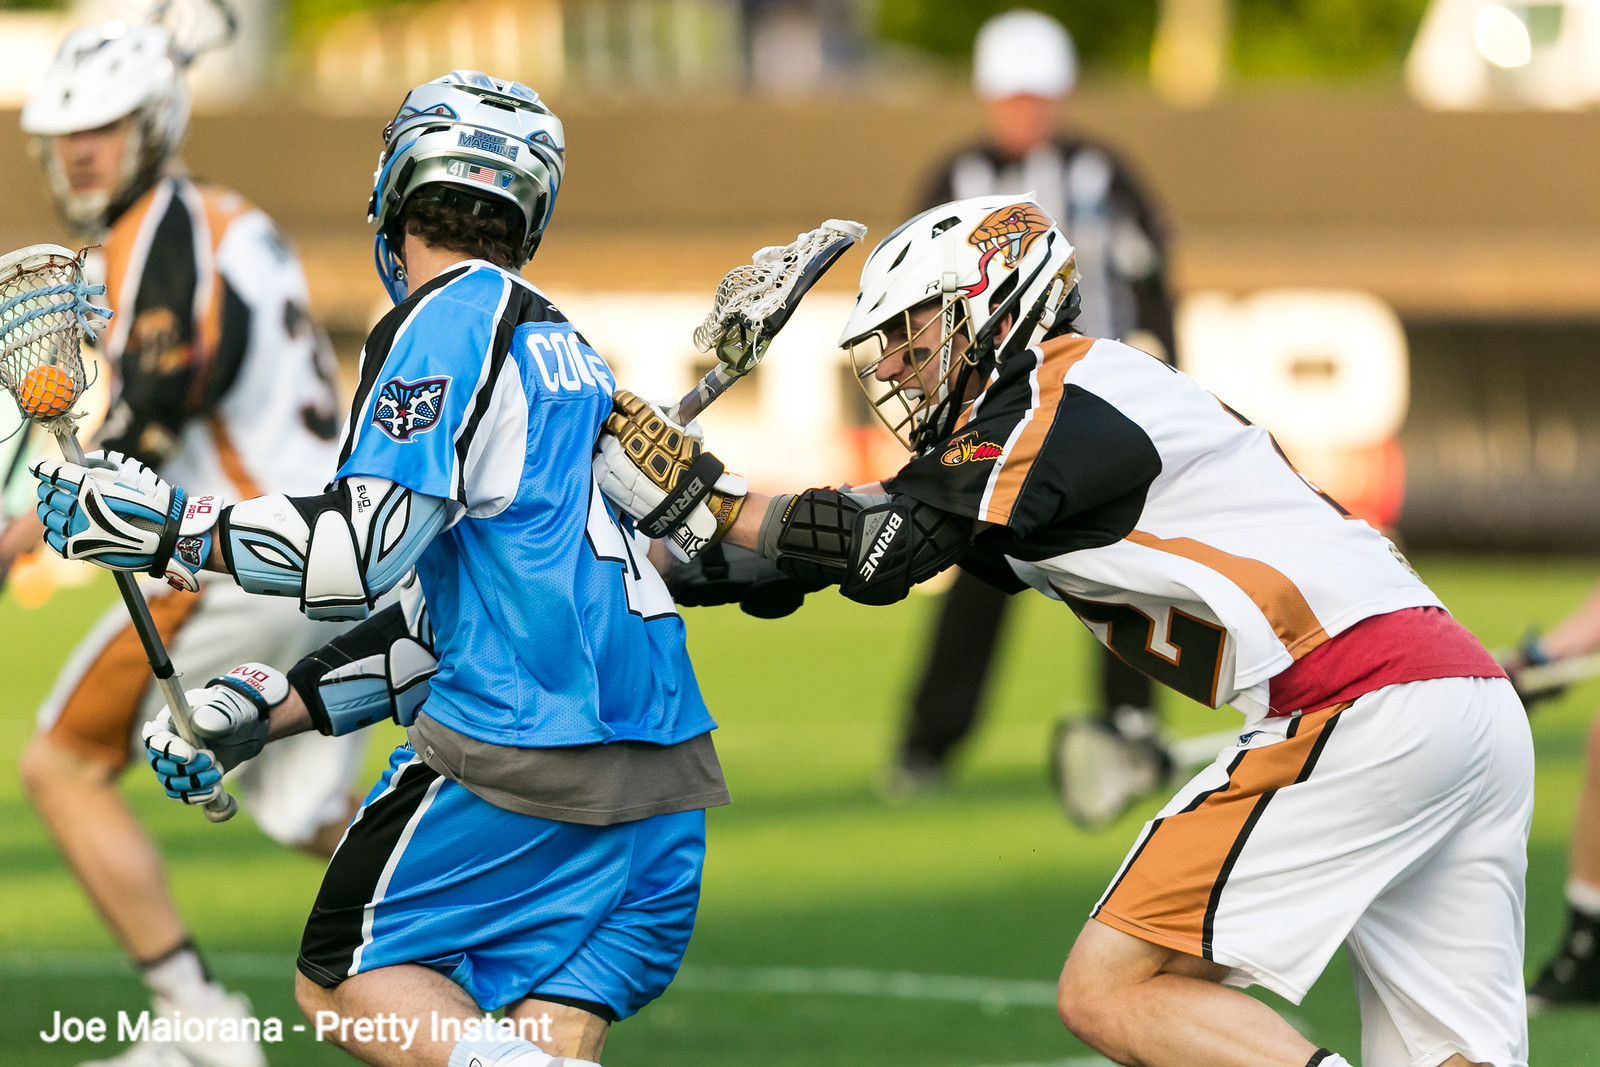 Rochester Rattlers @ Ohio Machine